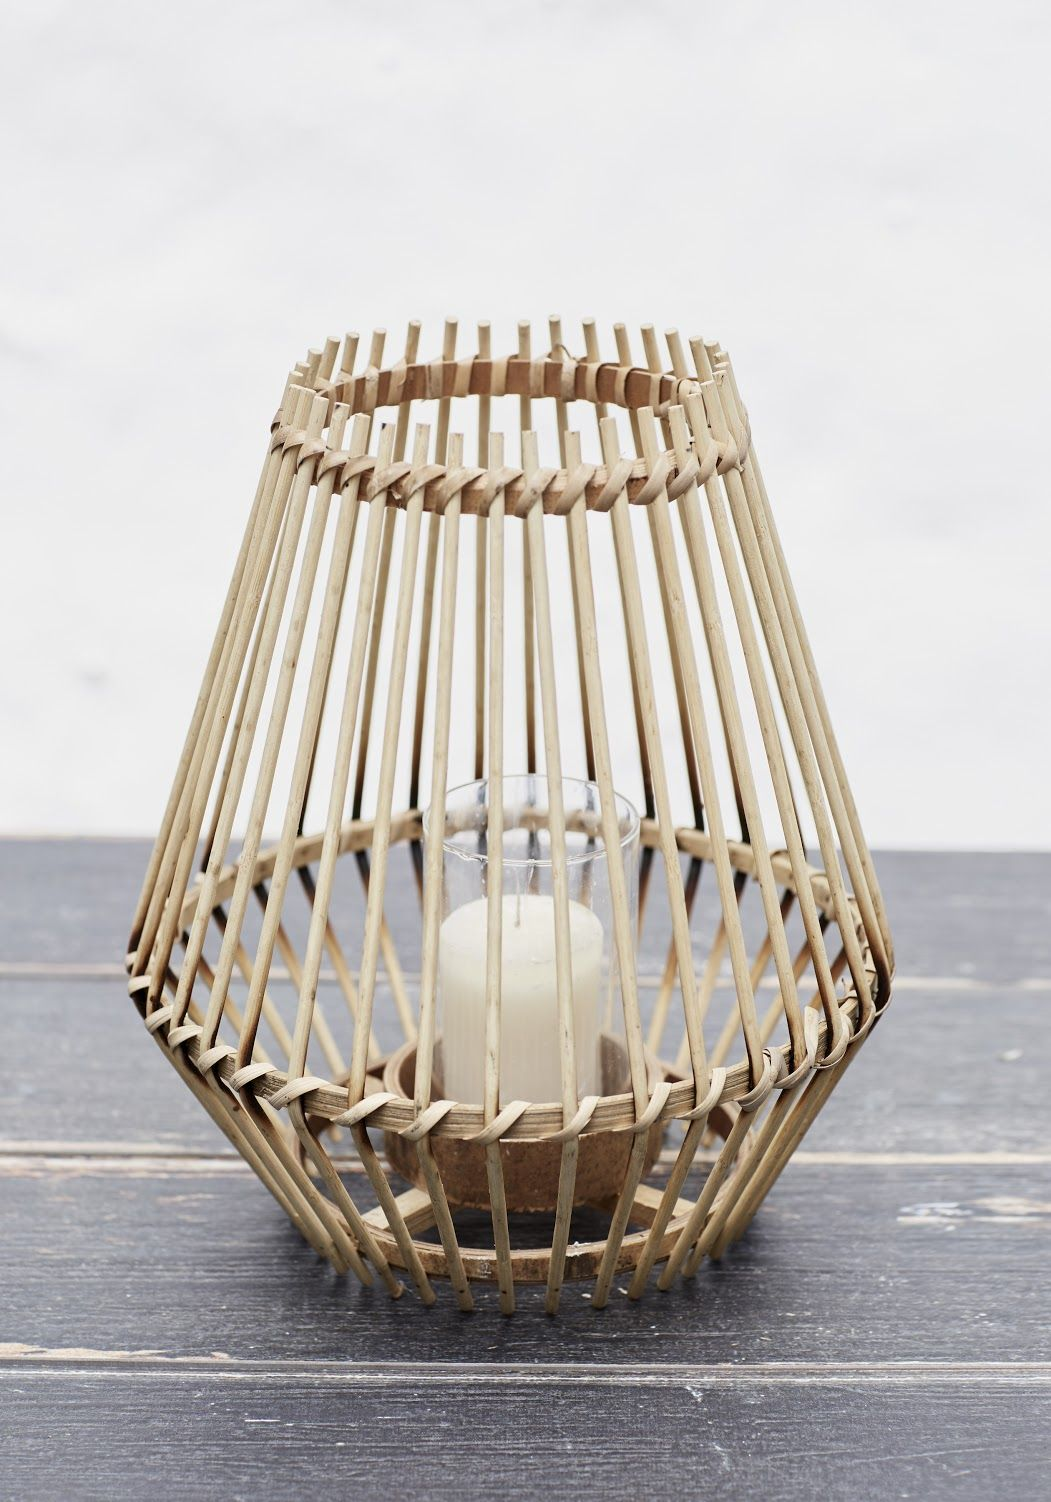 A Candle Holder With A Difference. Our Contemporary Bamboo Hurricane Lantern  Captures The Eye Of Anyone Walking By With Its Dynamic Design And Shape. Pictures